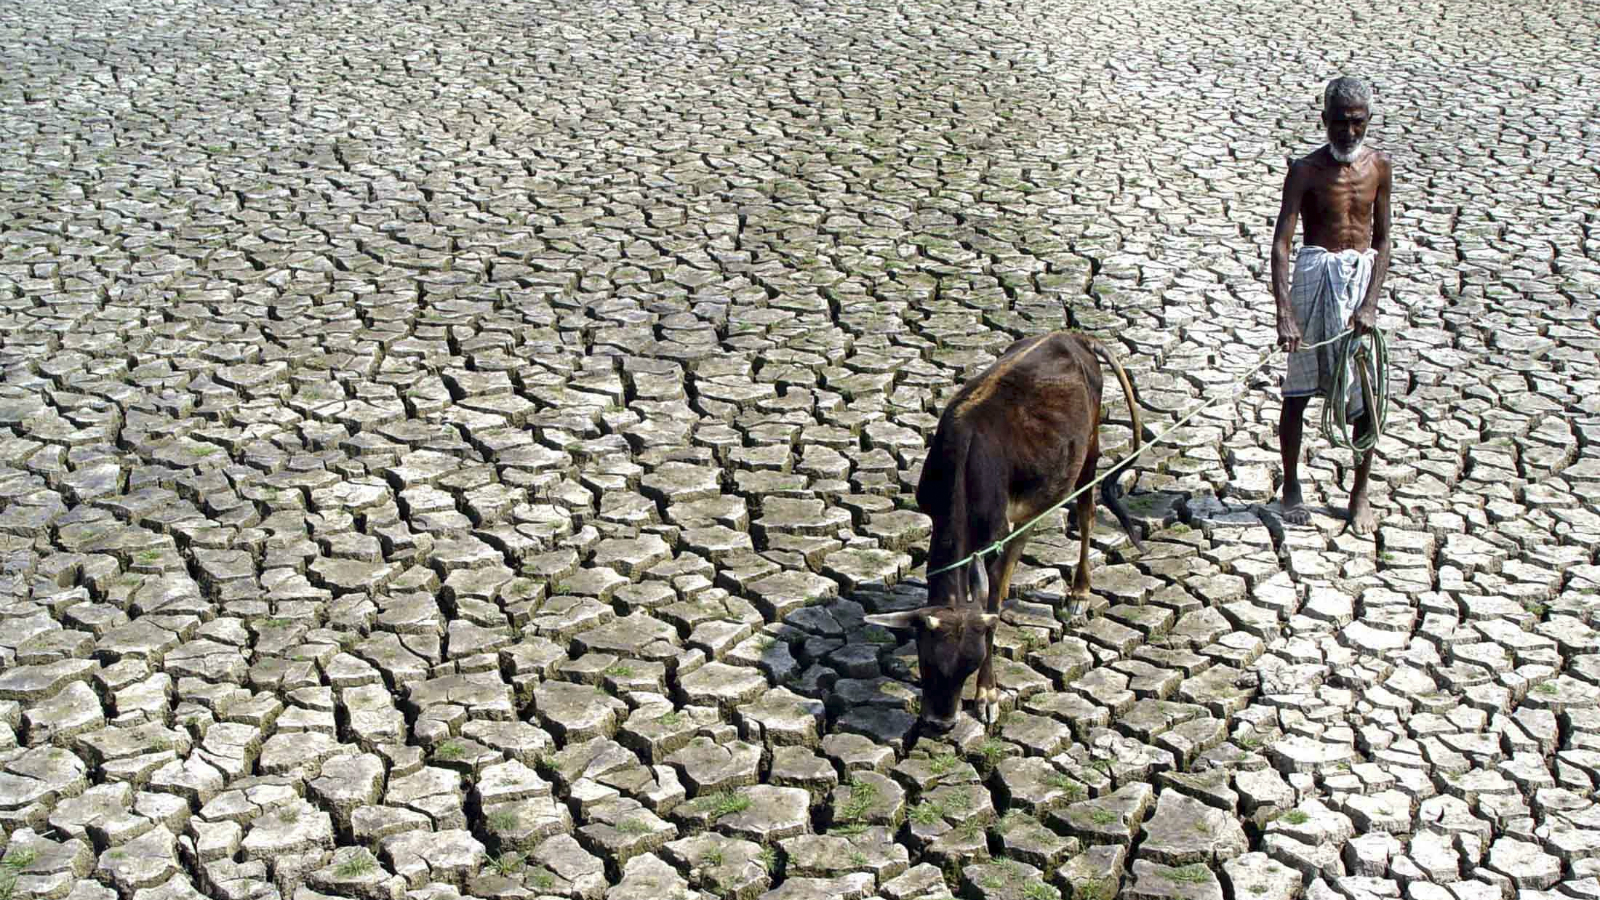 An Indian farmer walks with his hungry cow through a parched paddy field in Agartala, capital city of India's northeastern state of Tripura, March 10, 2005.